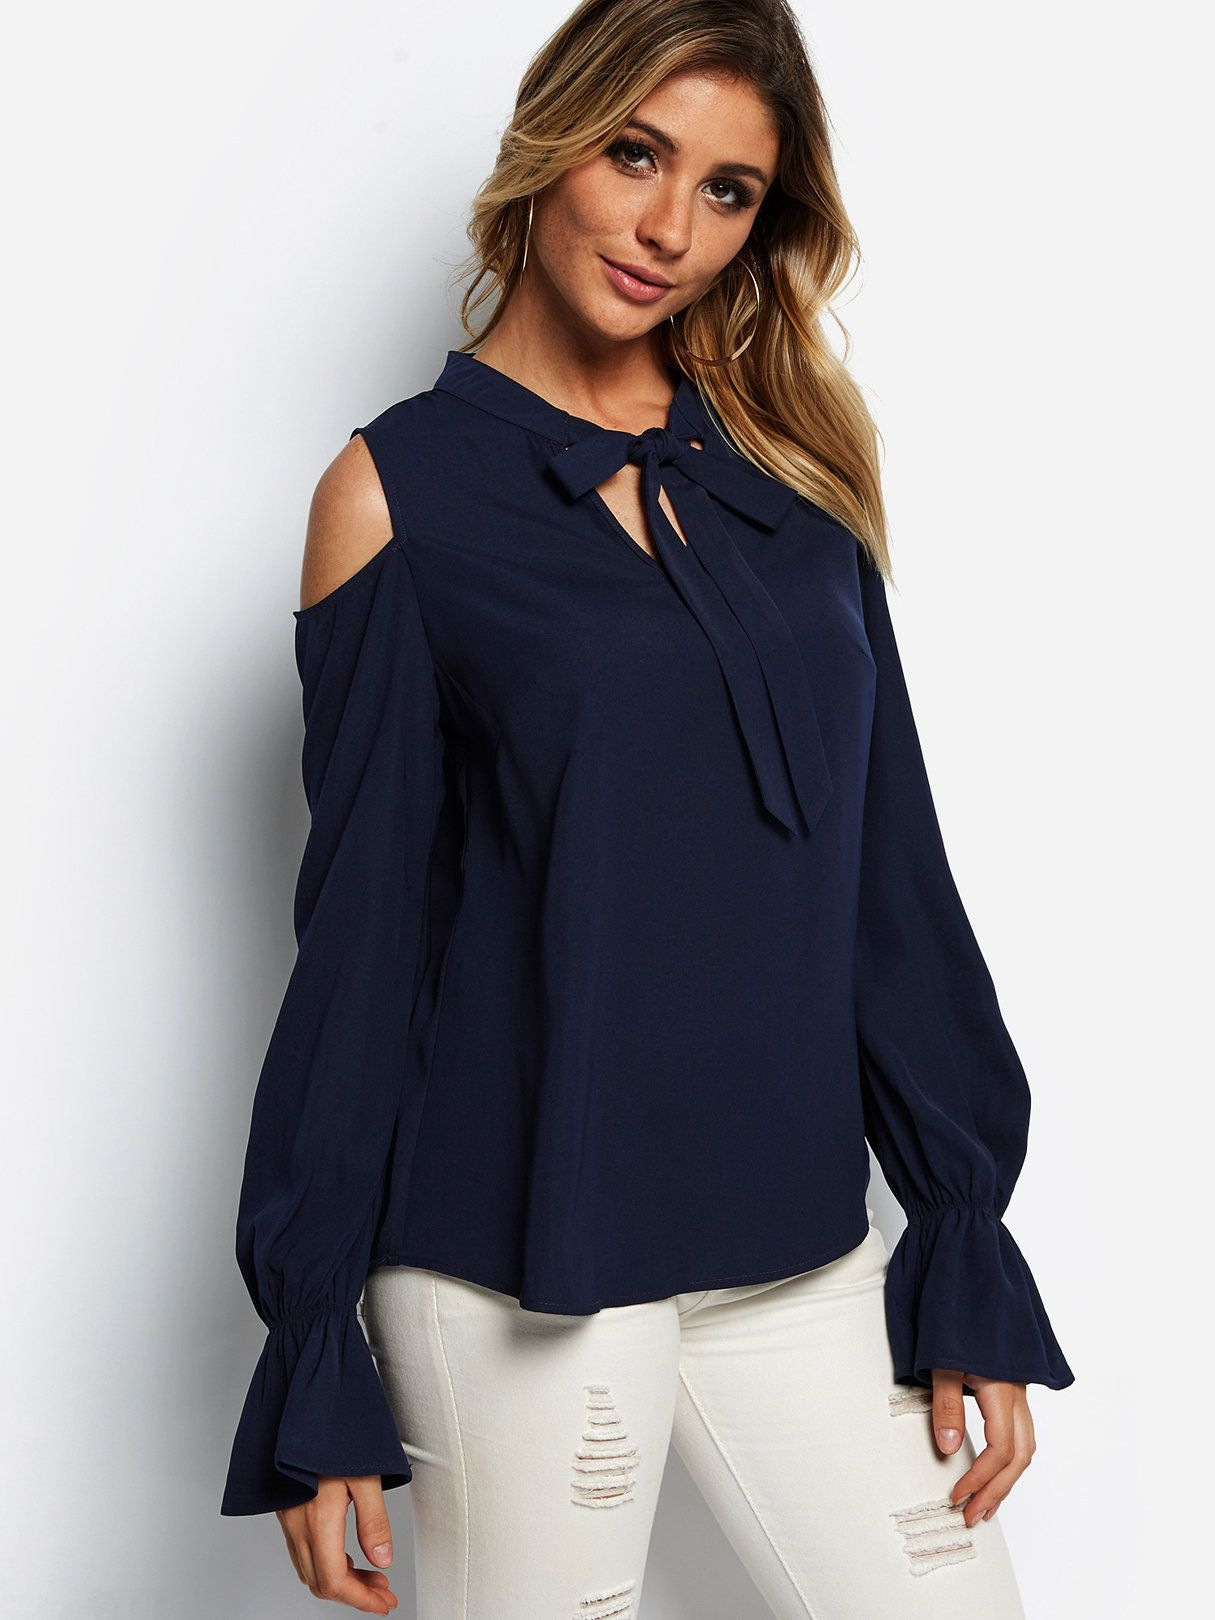 6760ae779c21 Navy Self-tie Design Cold Shoulder Bell Sleeves Blouse #yoins #dresses  #fashion #cocktail_dresses, #partydresses, dresses,cocktail dresses, party  dresses, ...